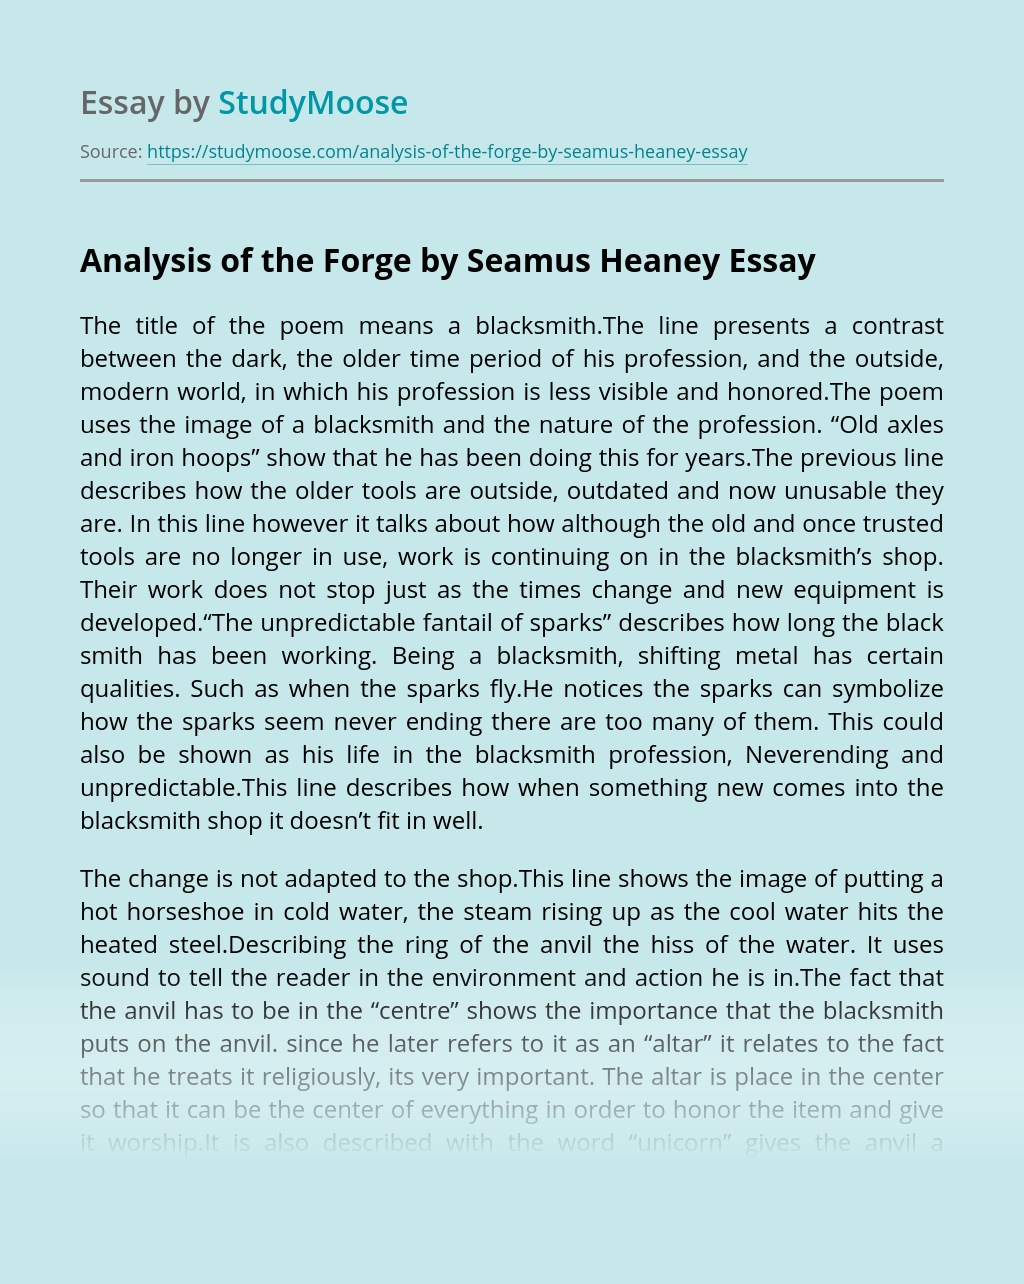 Analysis of the Forge by Seamus Heaney